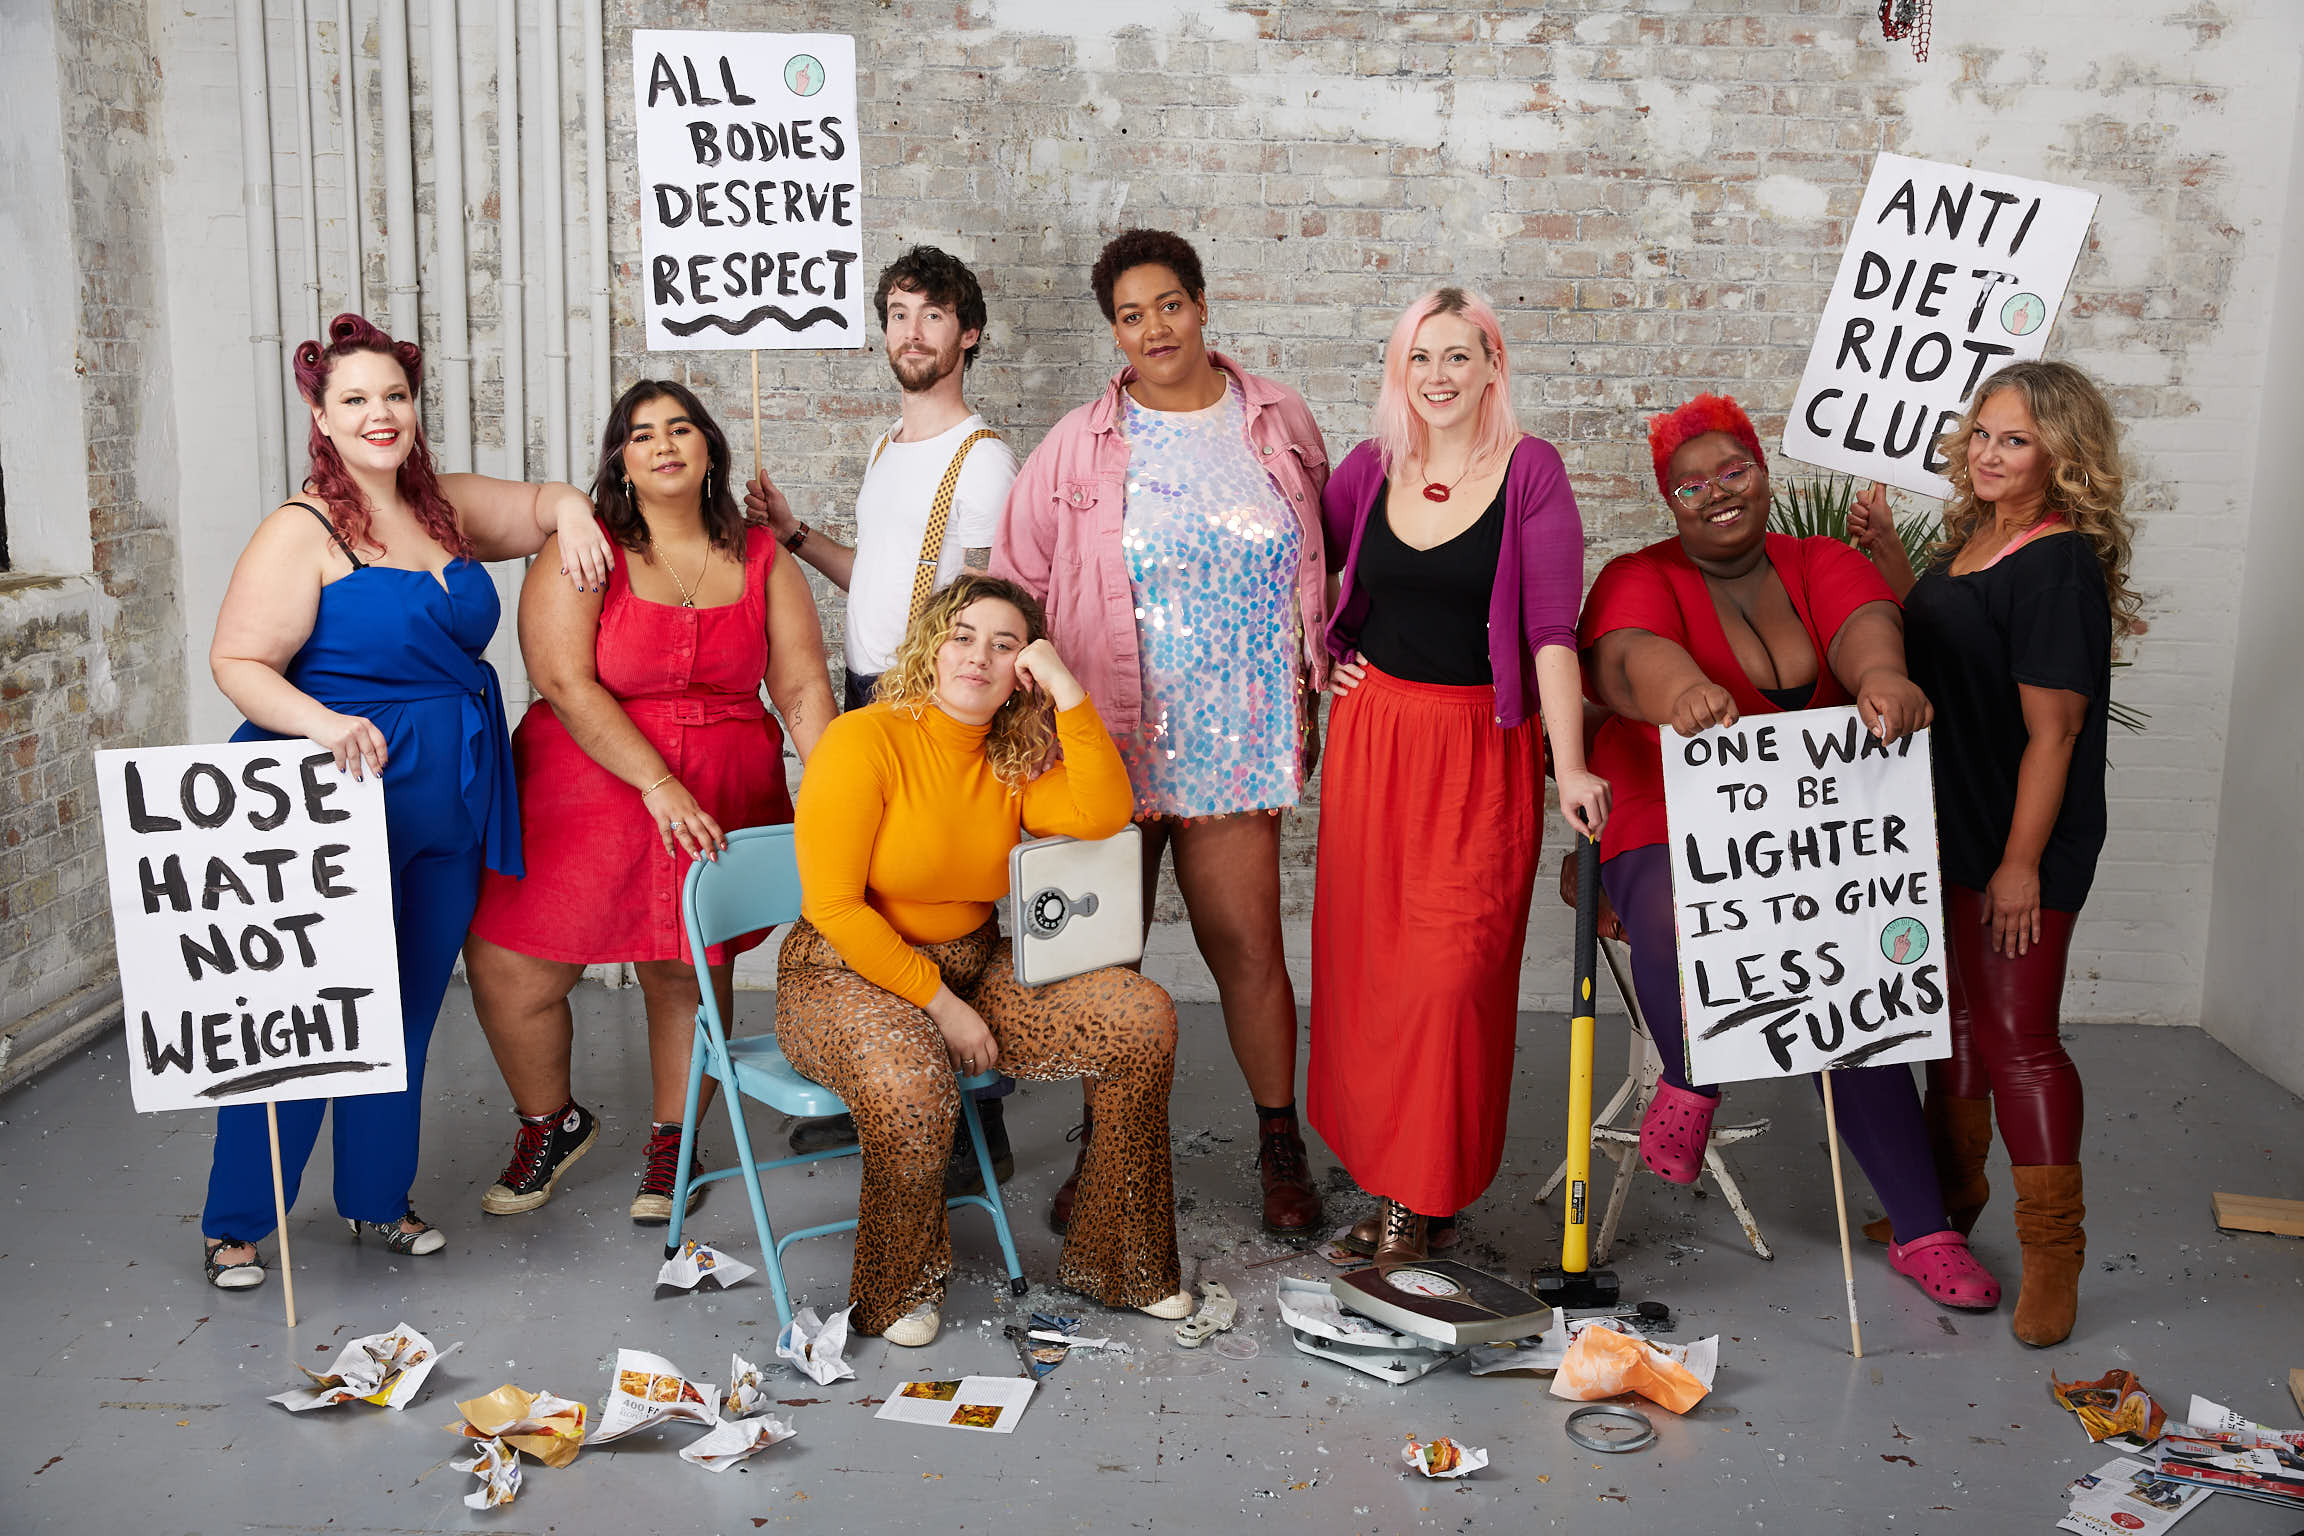 Members of the Anti Diet Riot Club Community standing in a group with protest signs